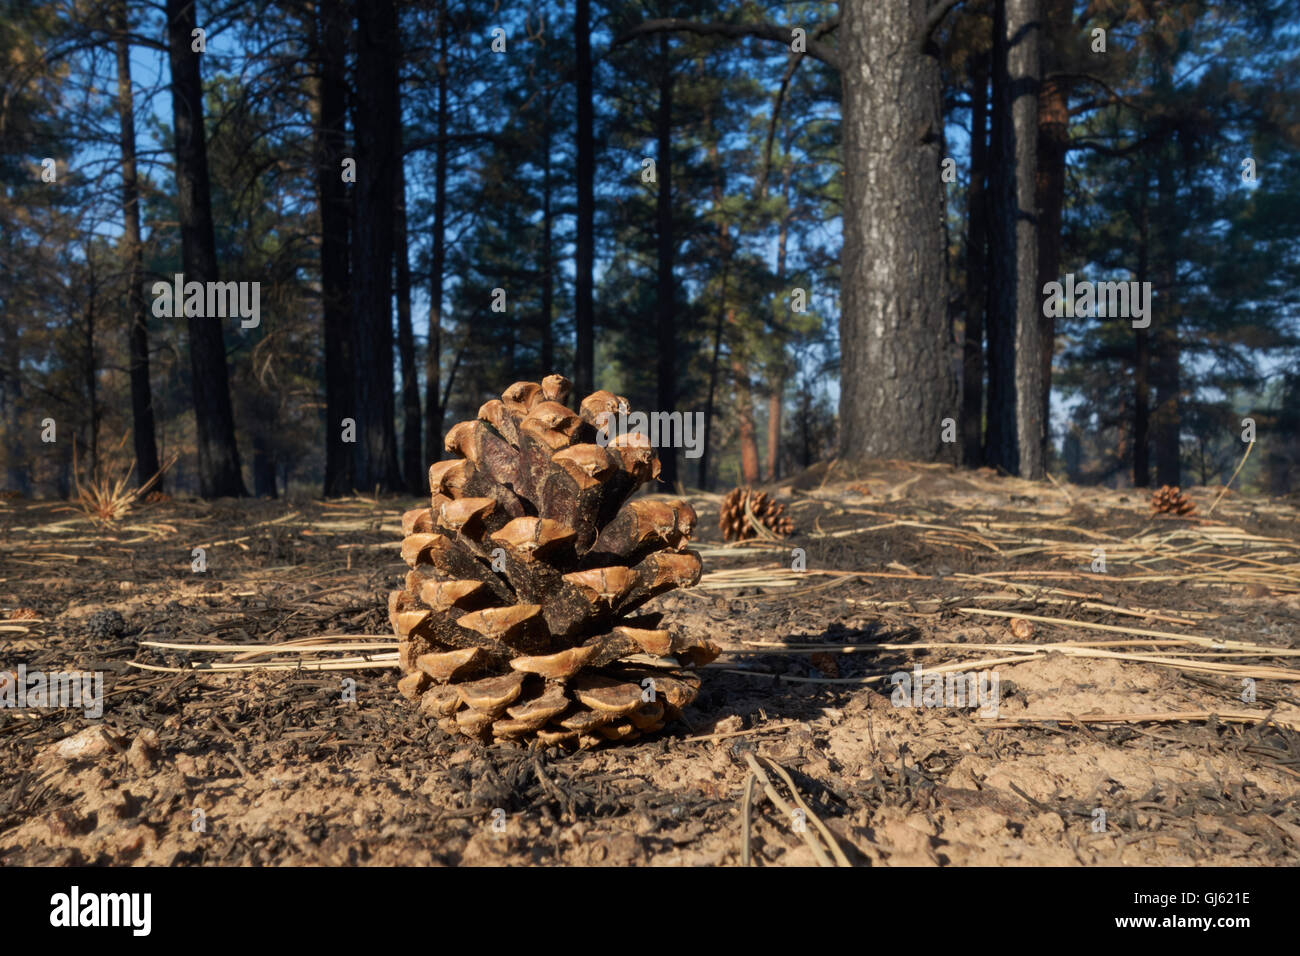 Pine cone on forest floor which has been cleared by fire. Arizona. USA - Stock Image